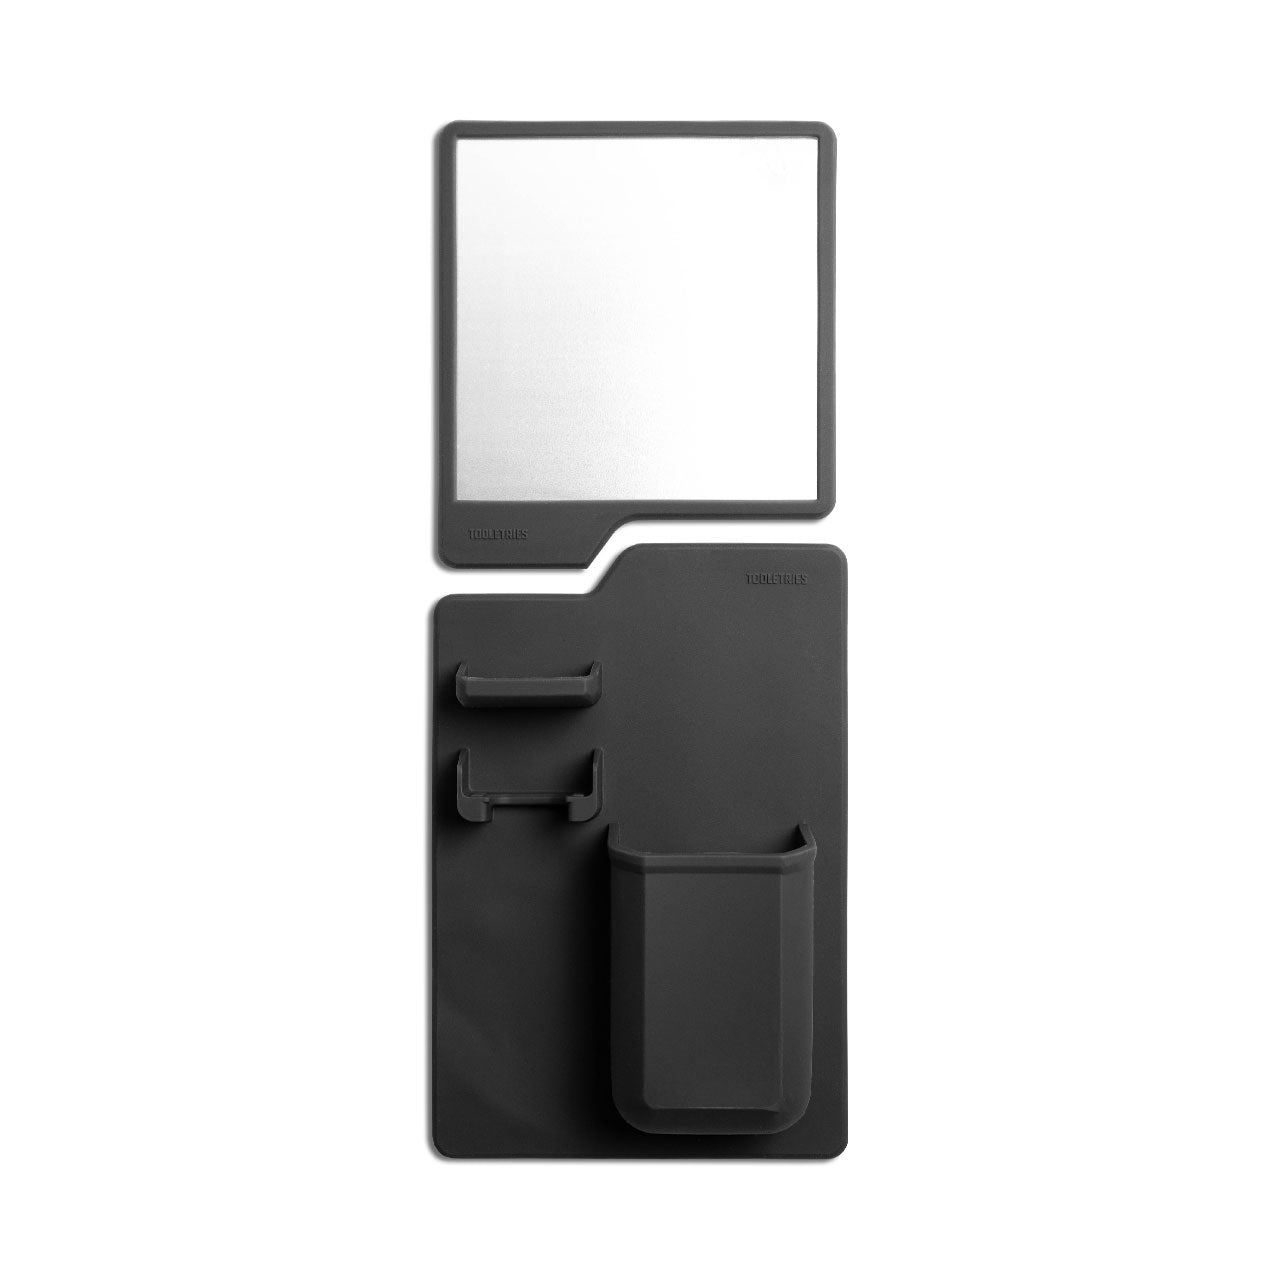 Tooletries Shower Mirror Bundle